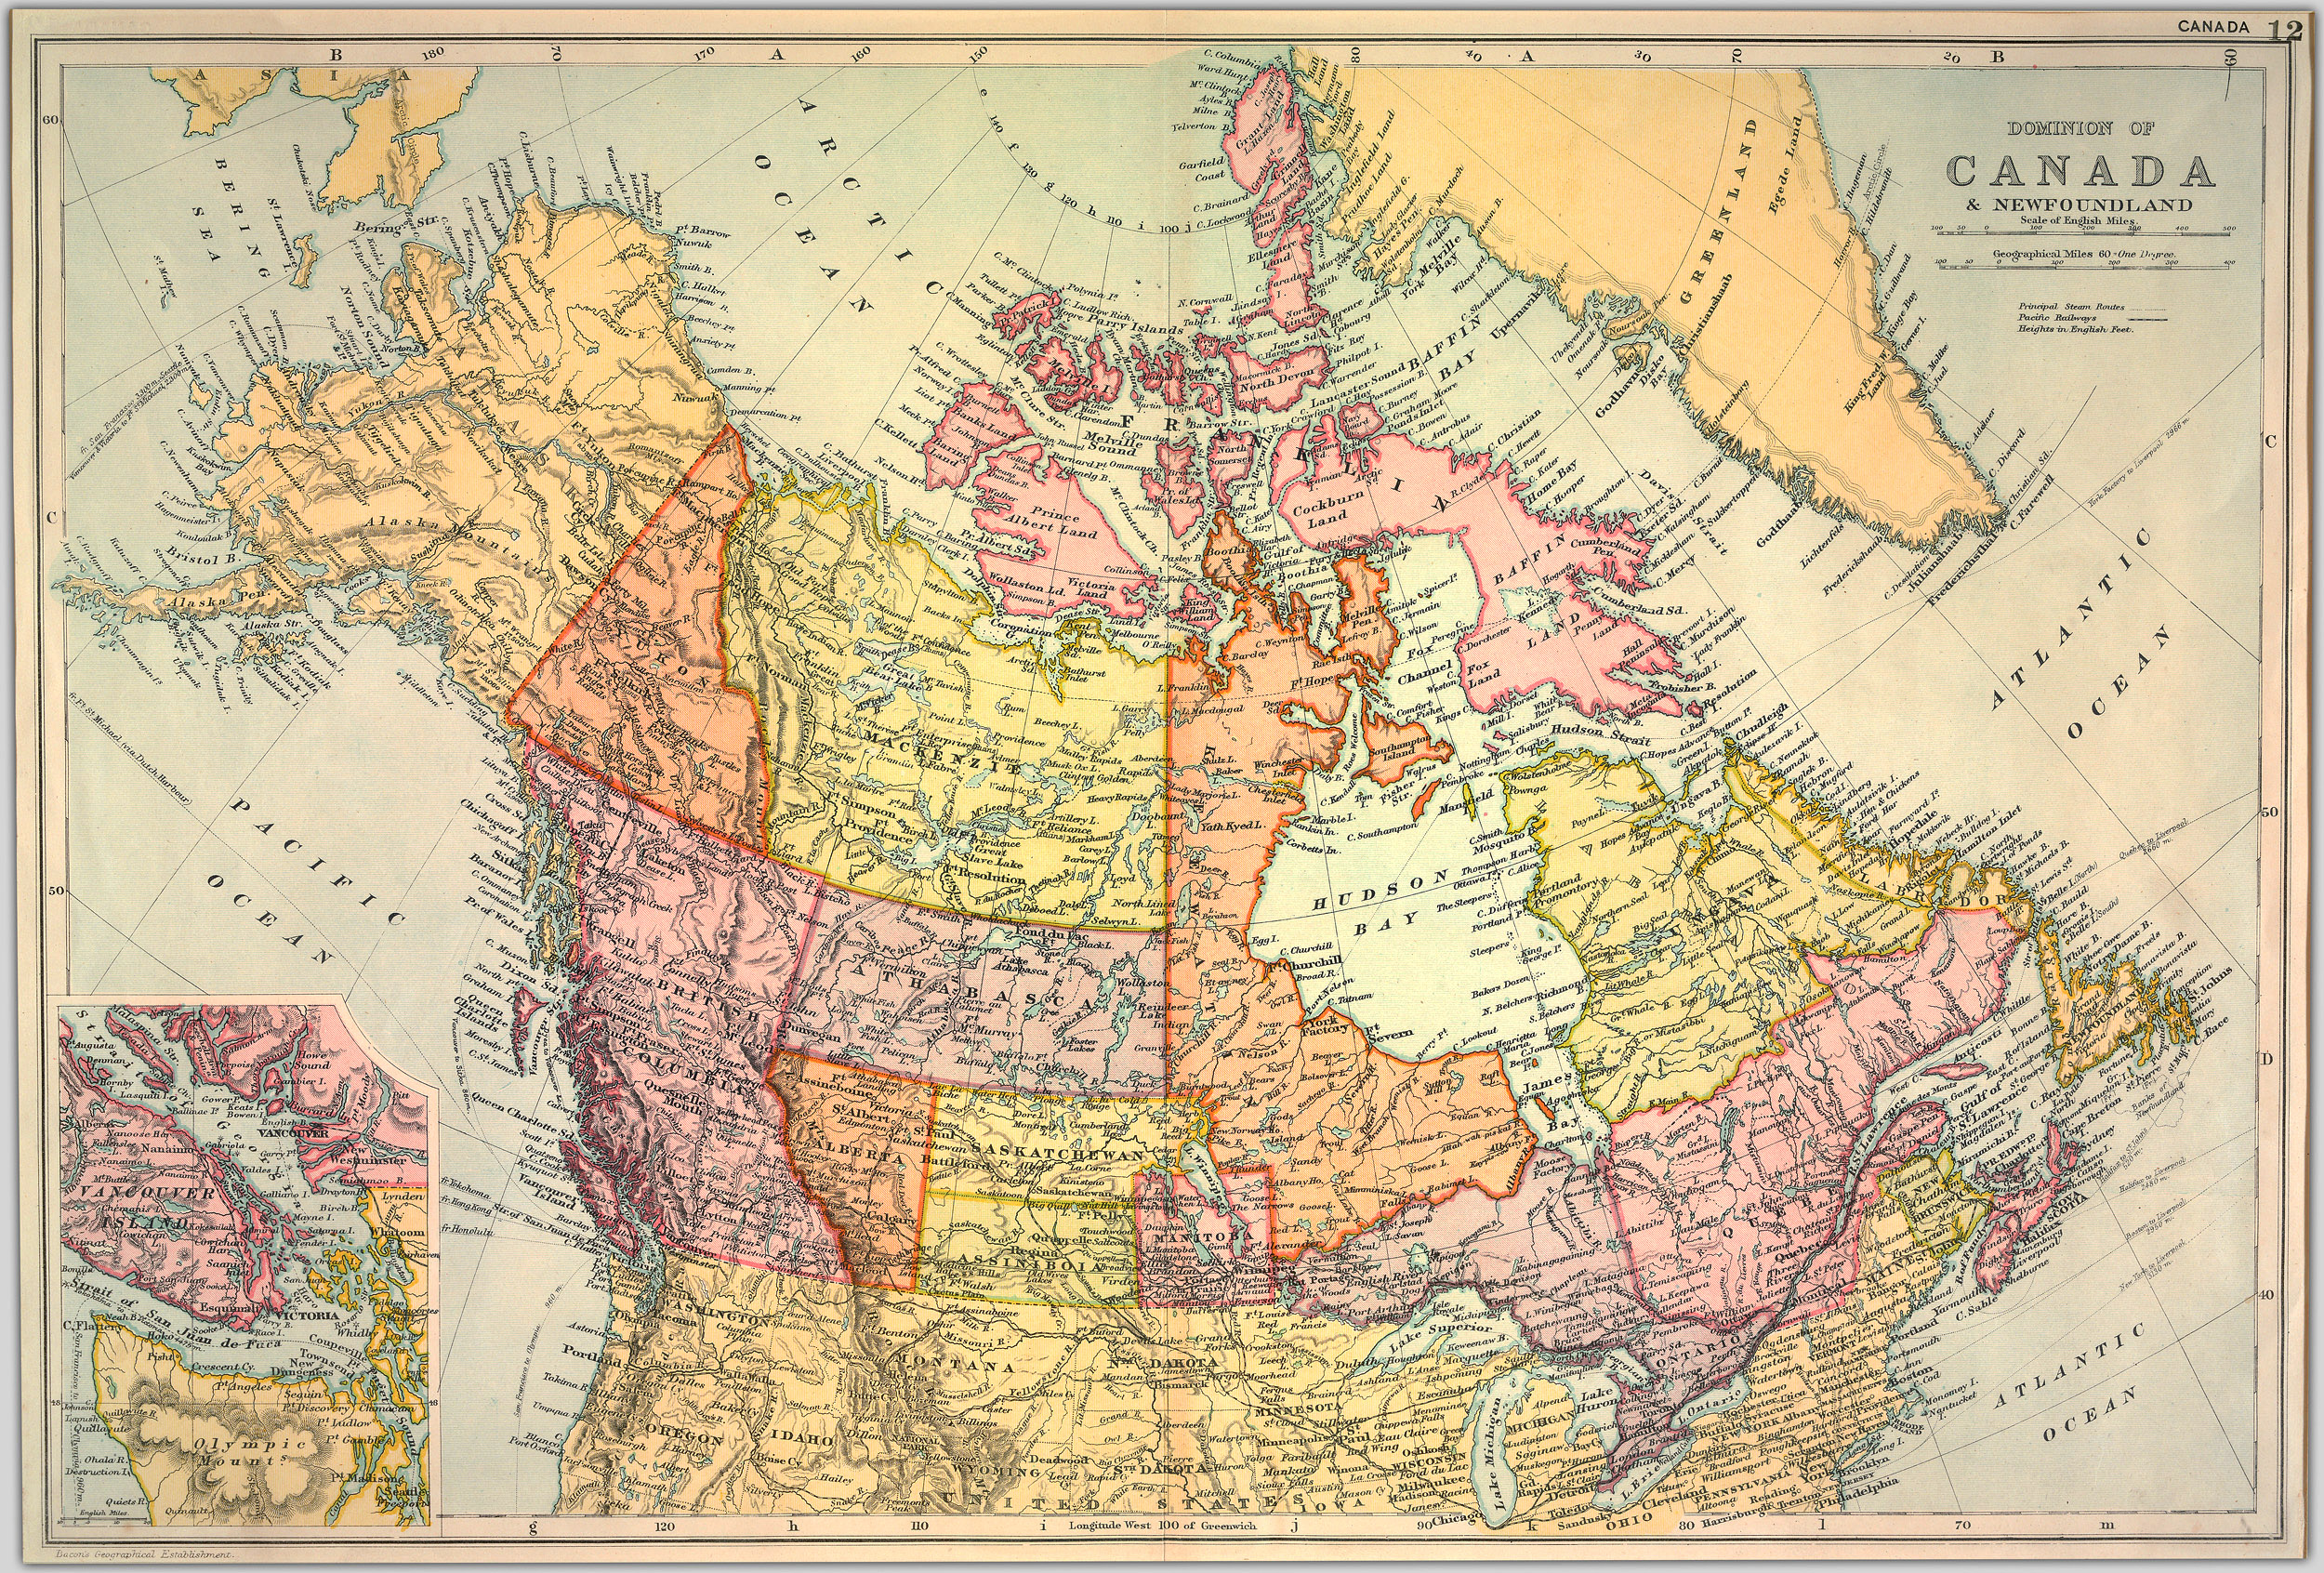 Vintage Map Of Canada Wonderful Free Old Maps Of Canada To Print   Picture Box Blue